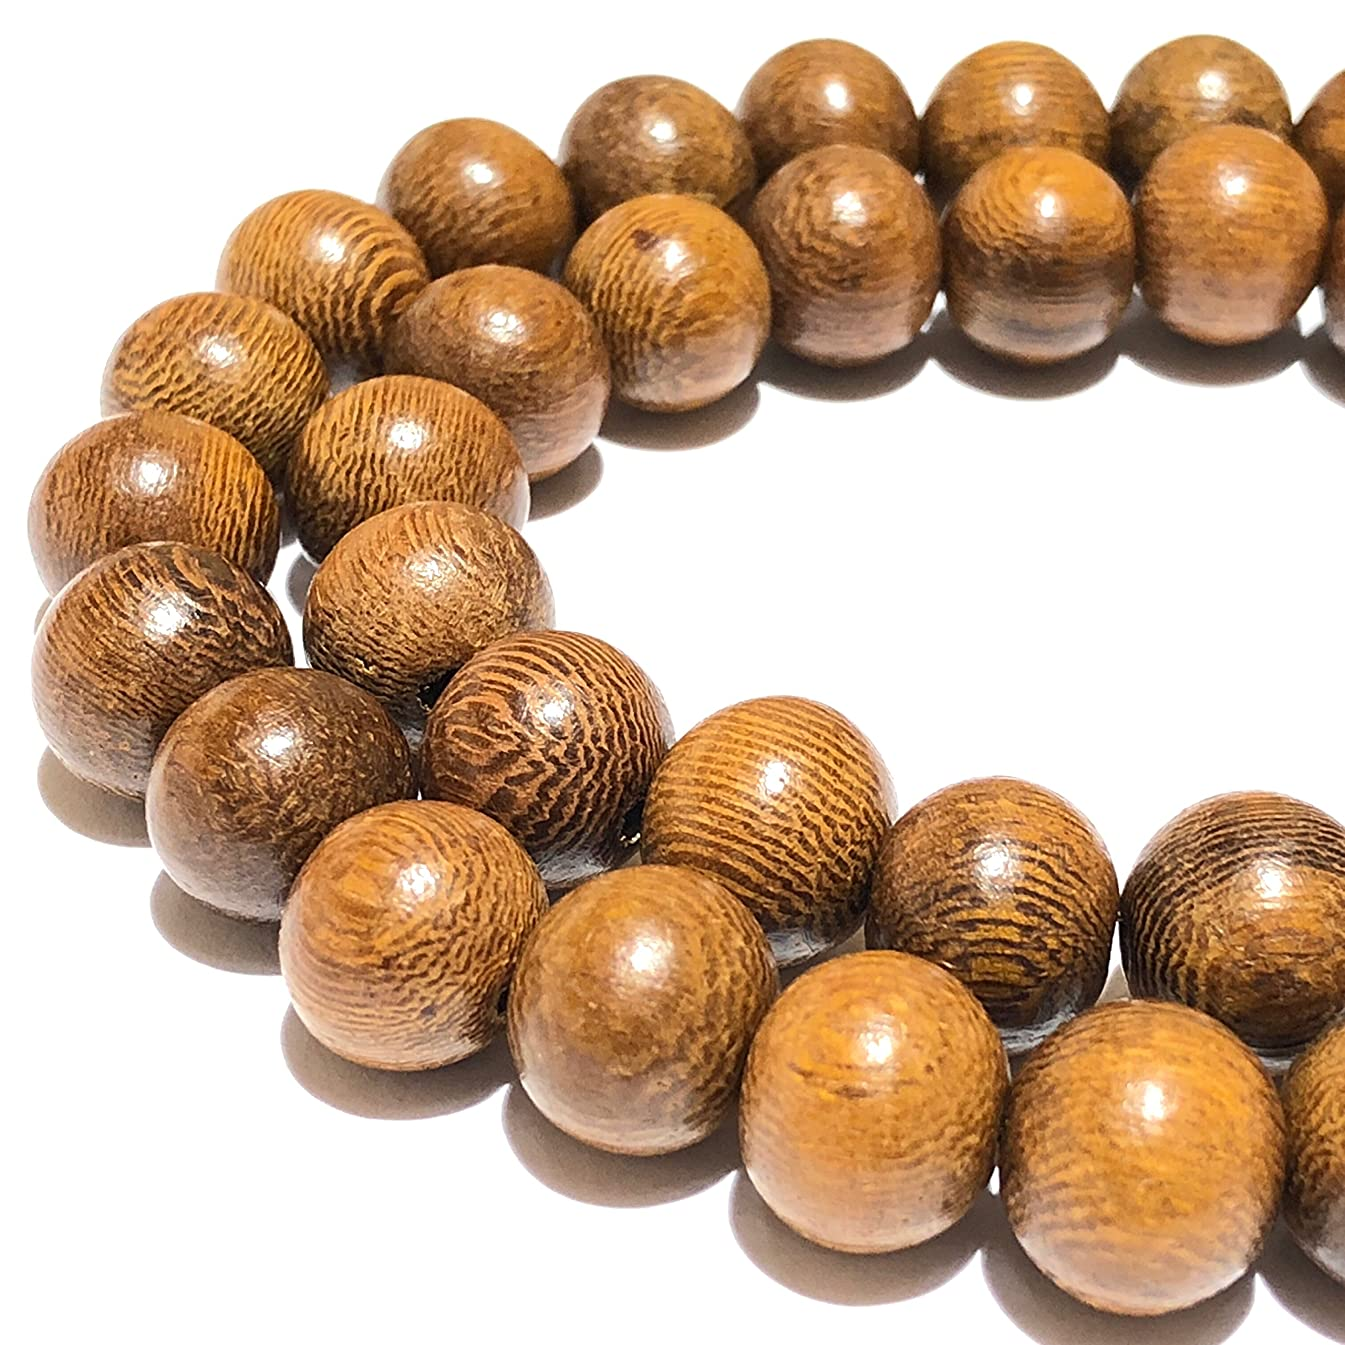 [ABCgems] Madre De Cacao Hardwood AKA Kakawate (Exquisite Wood Grain) Tiny 6mm Smooth Round Beads for Beading & Jewelry Making